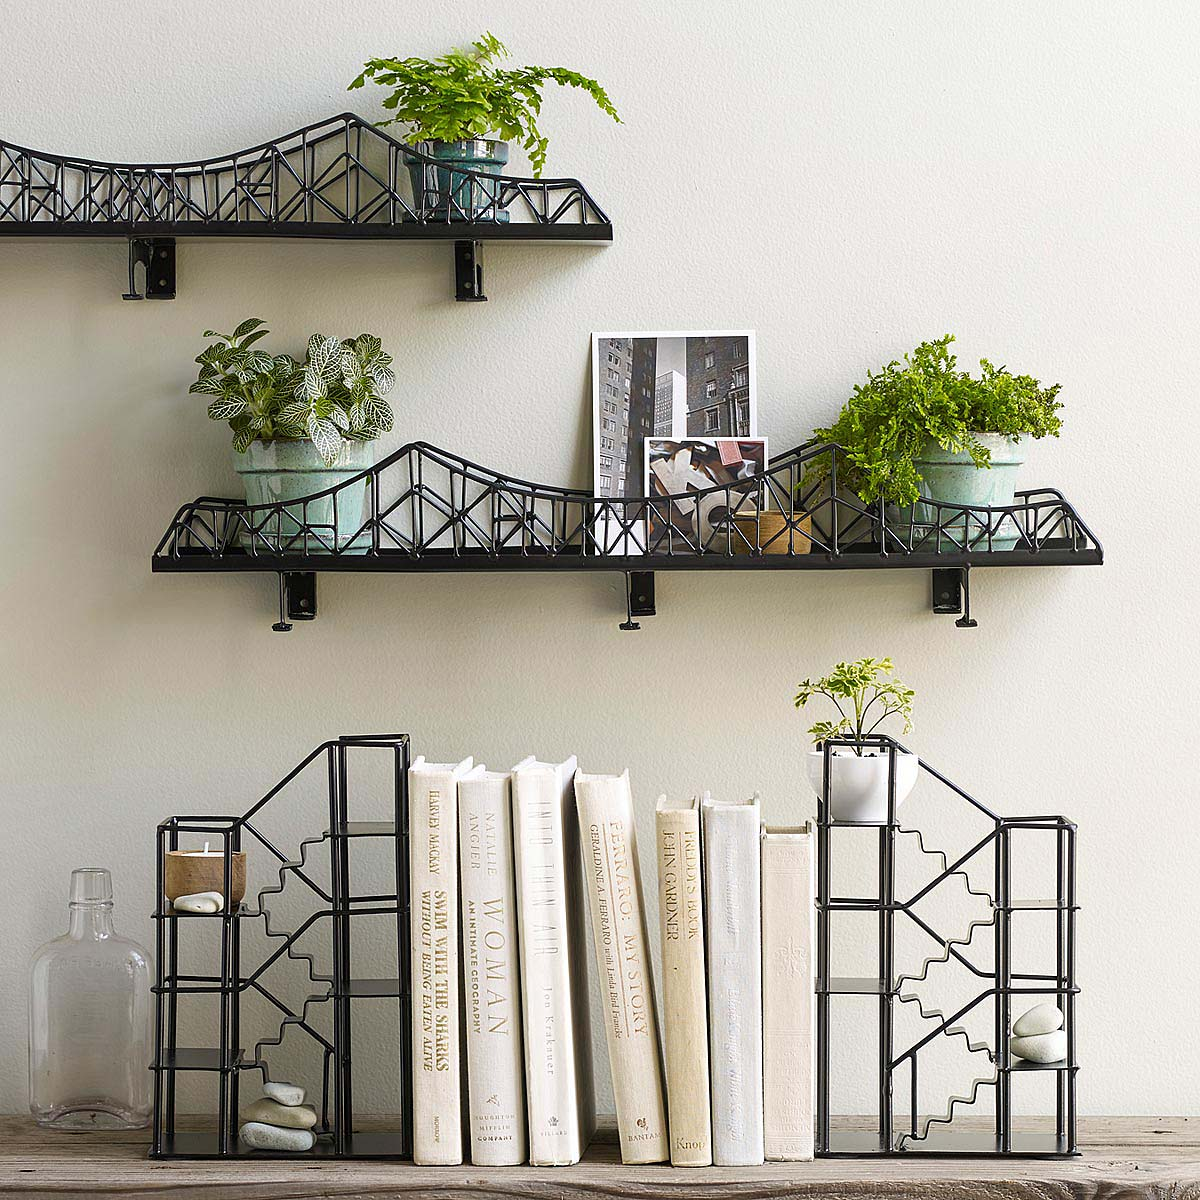 Staircase Shelving suspension bridge shelf | metal shelving | uncommongoods